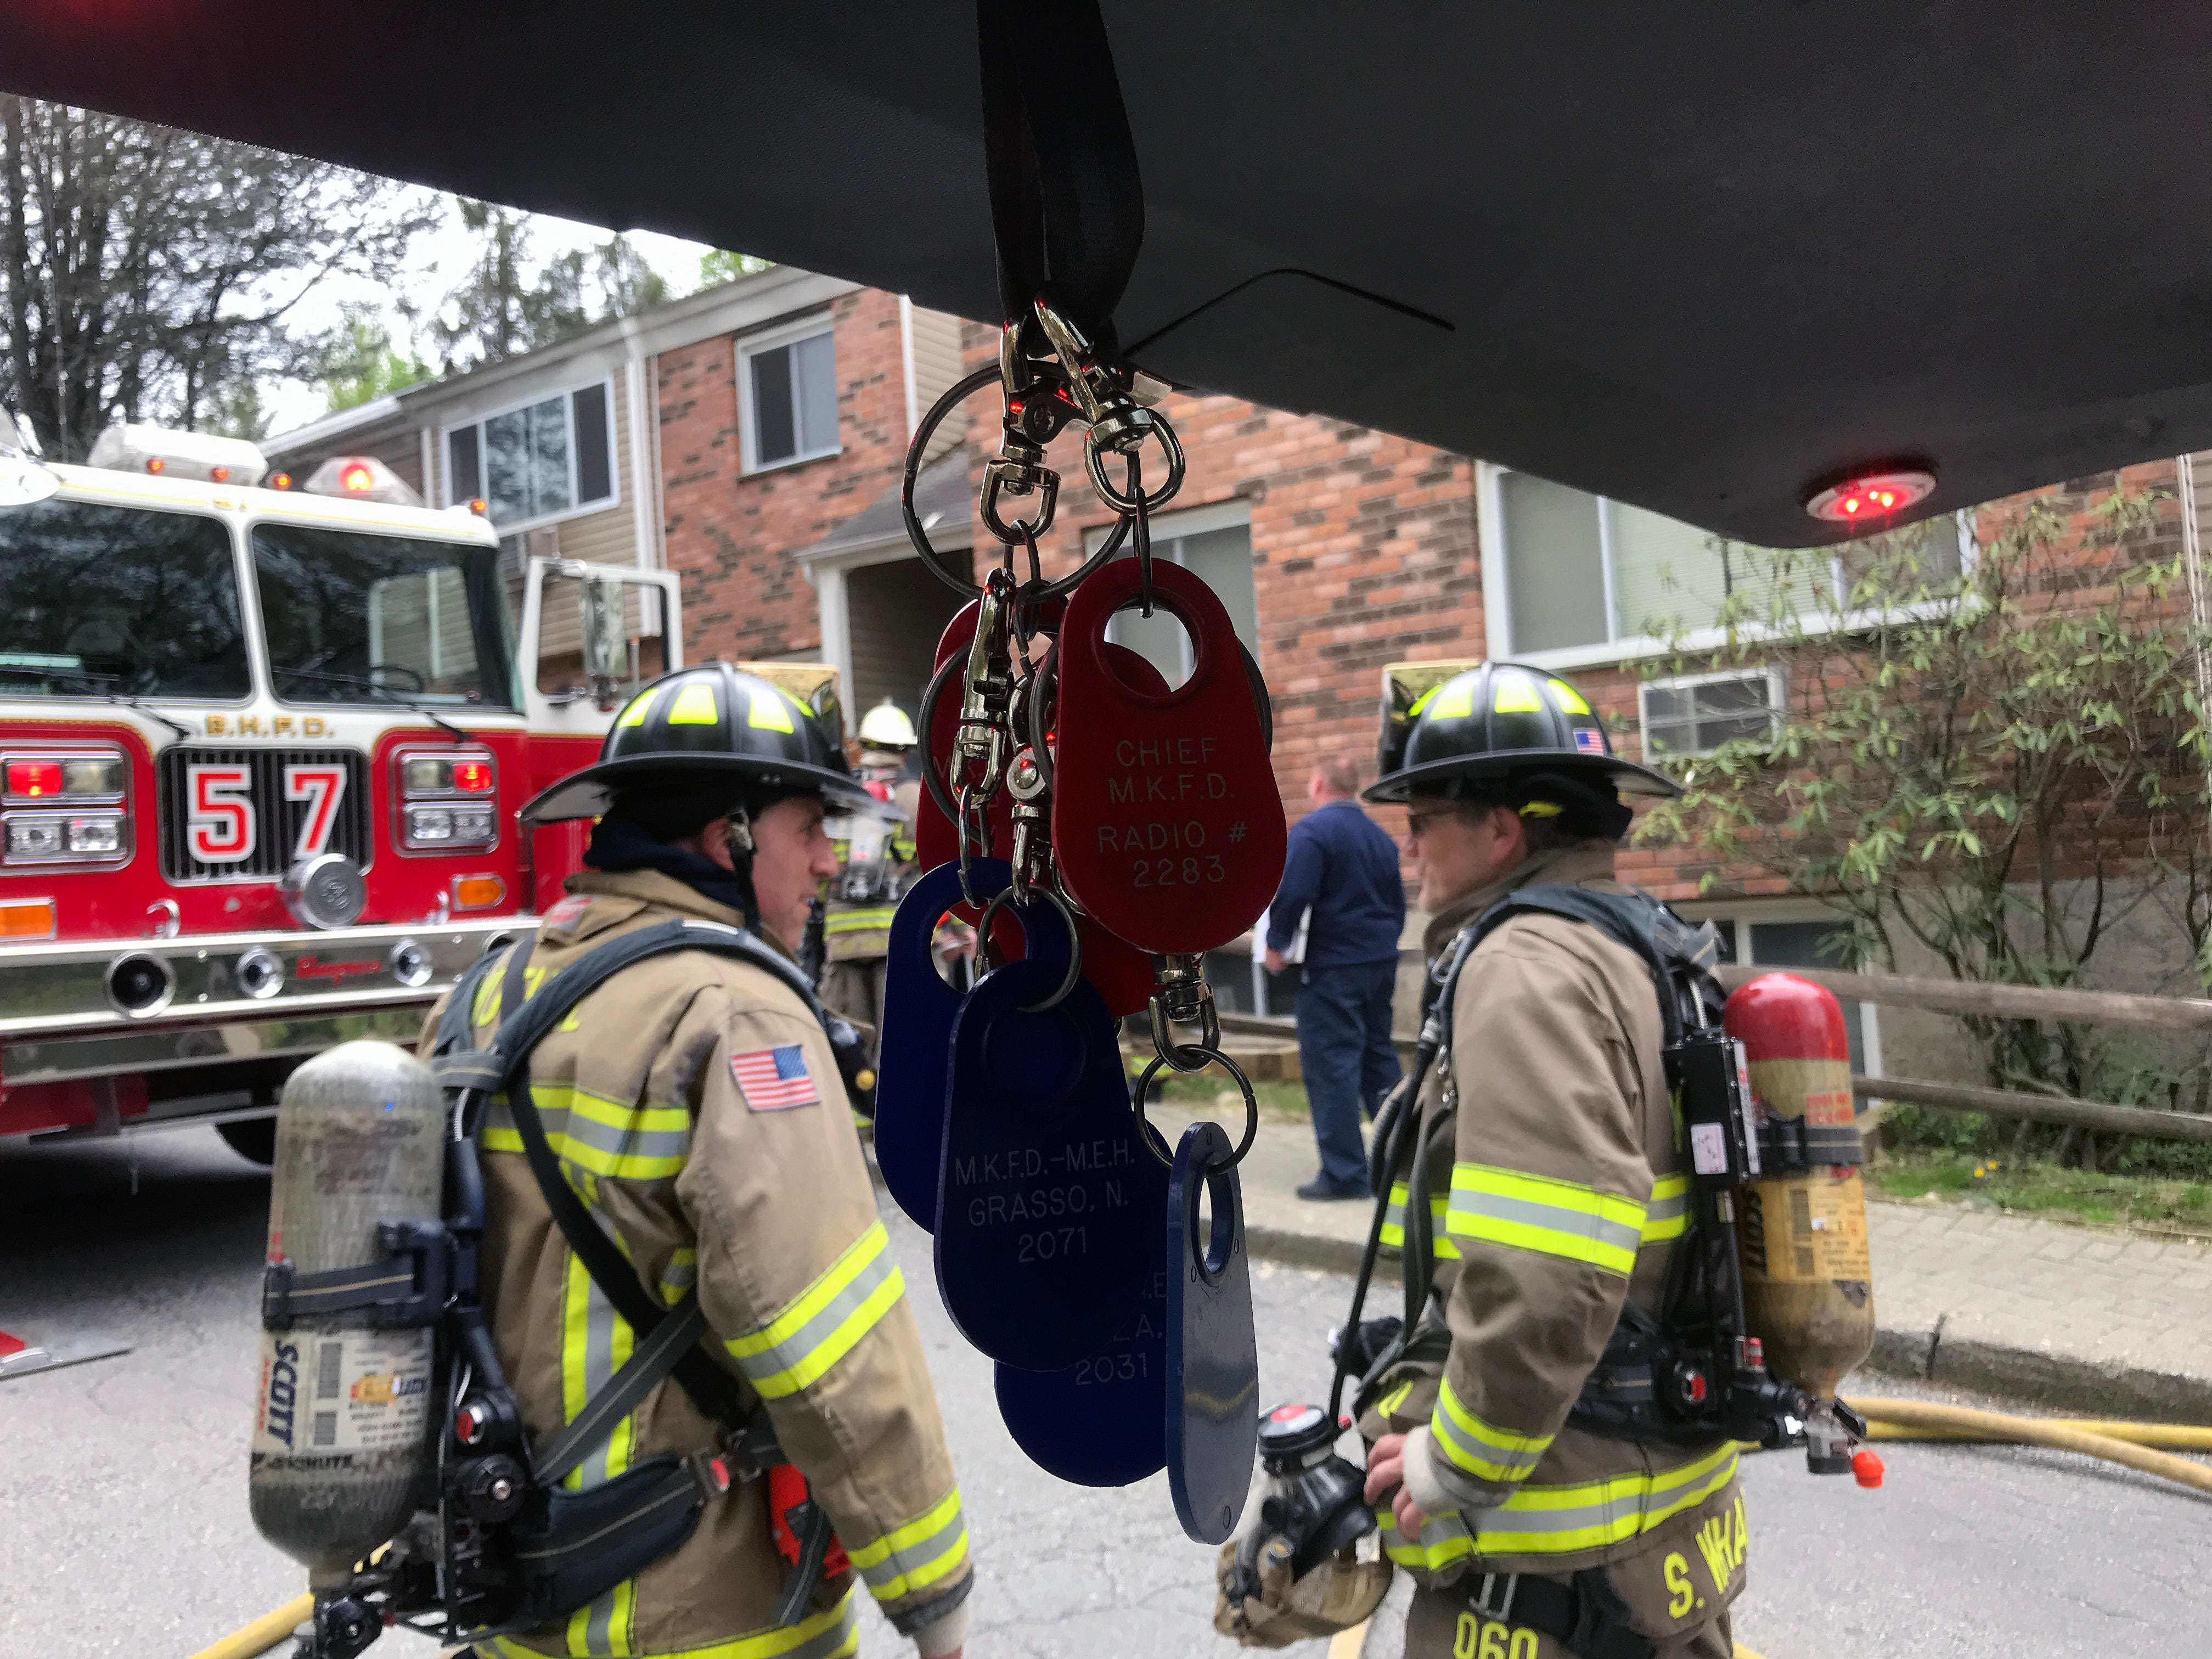 Bedford Hills firefighters quickly extinguished a fire in an apartment on Rome Avenue in Bedford Hills May 9, 2019. Firefighters from Katonah and Mt. Kisco assisted at the scene.